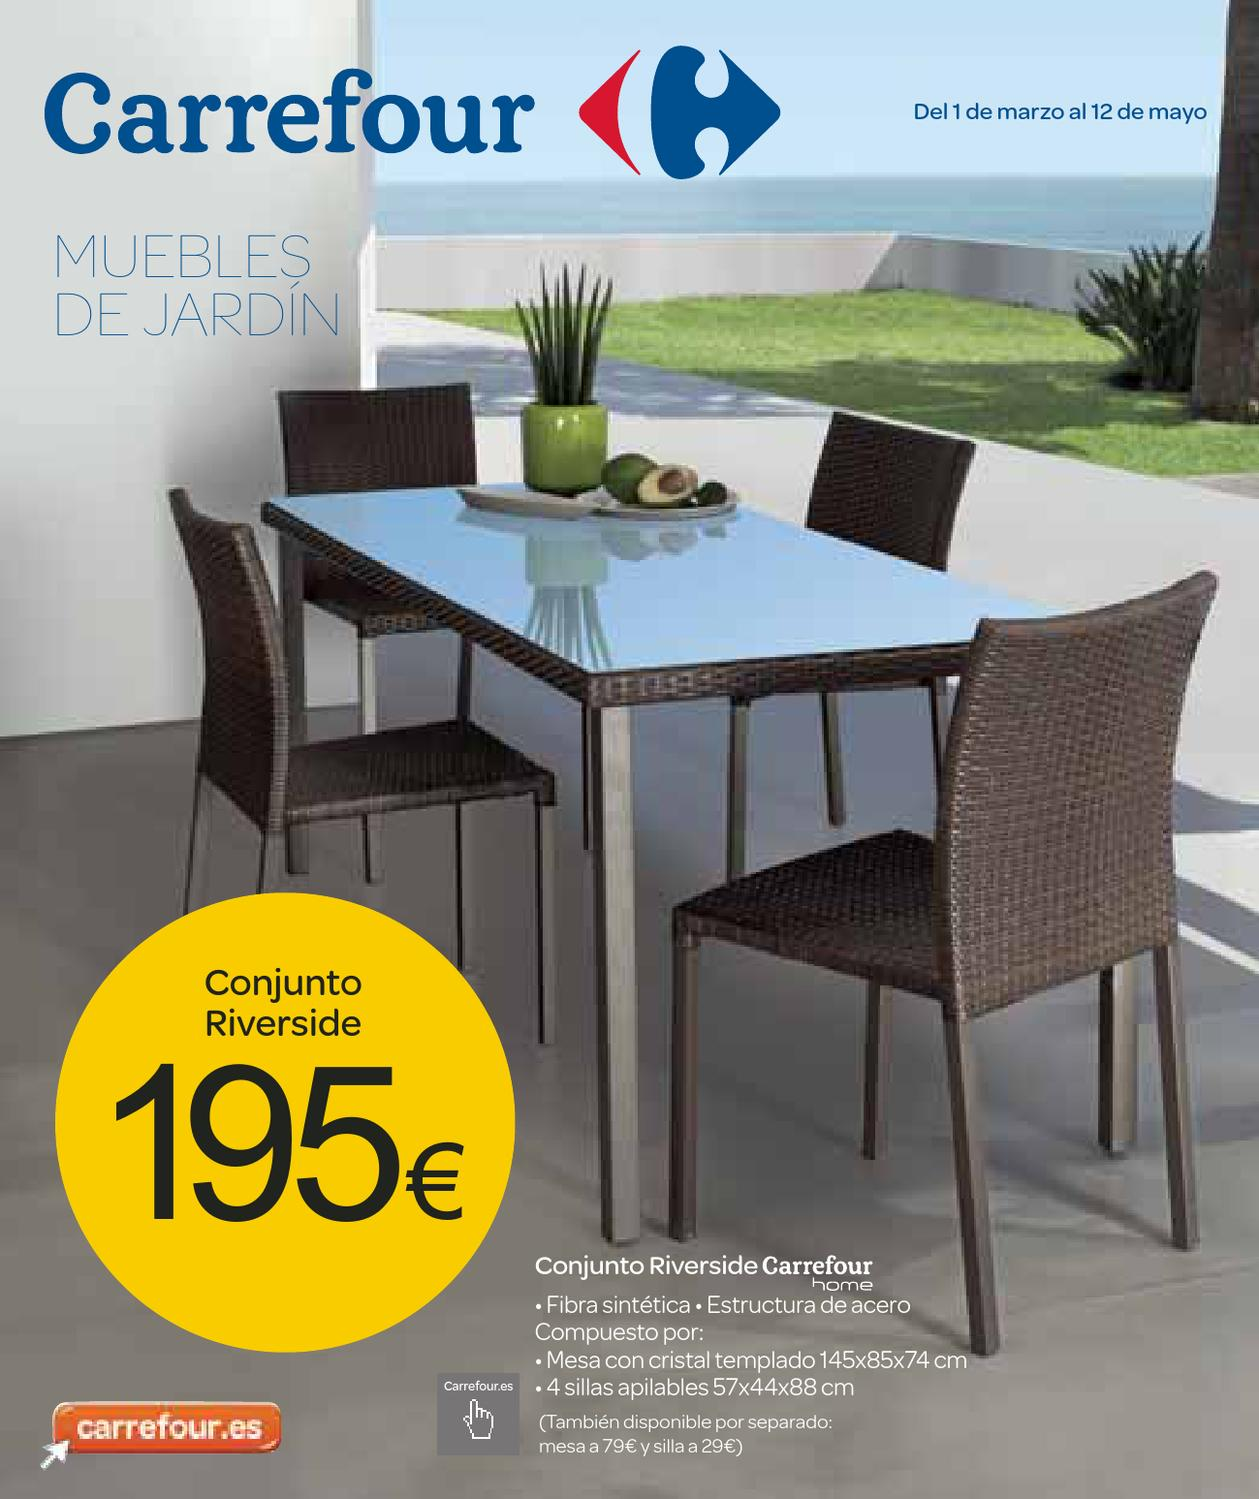 Catalogo de muebles de jardin carrefour by milyuncatalogos for Catalogo carrefour muebles